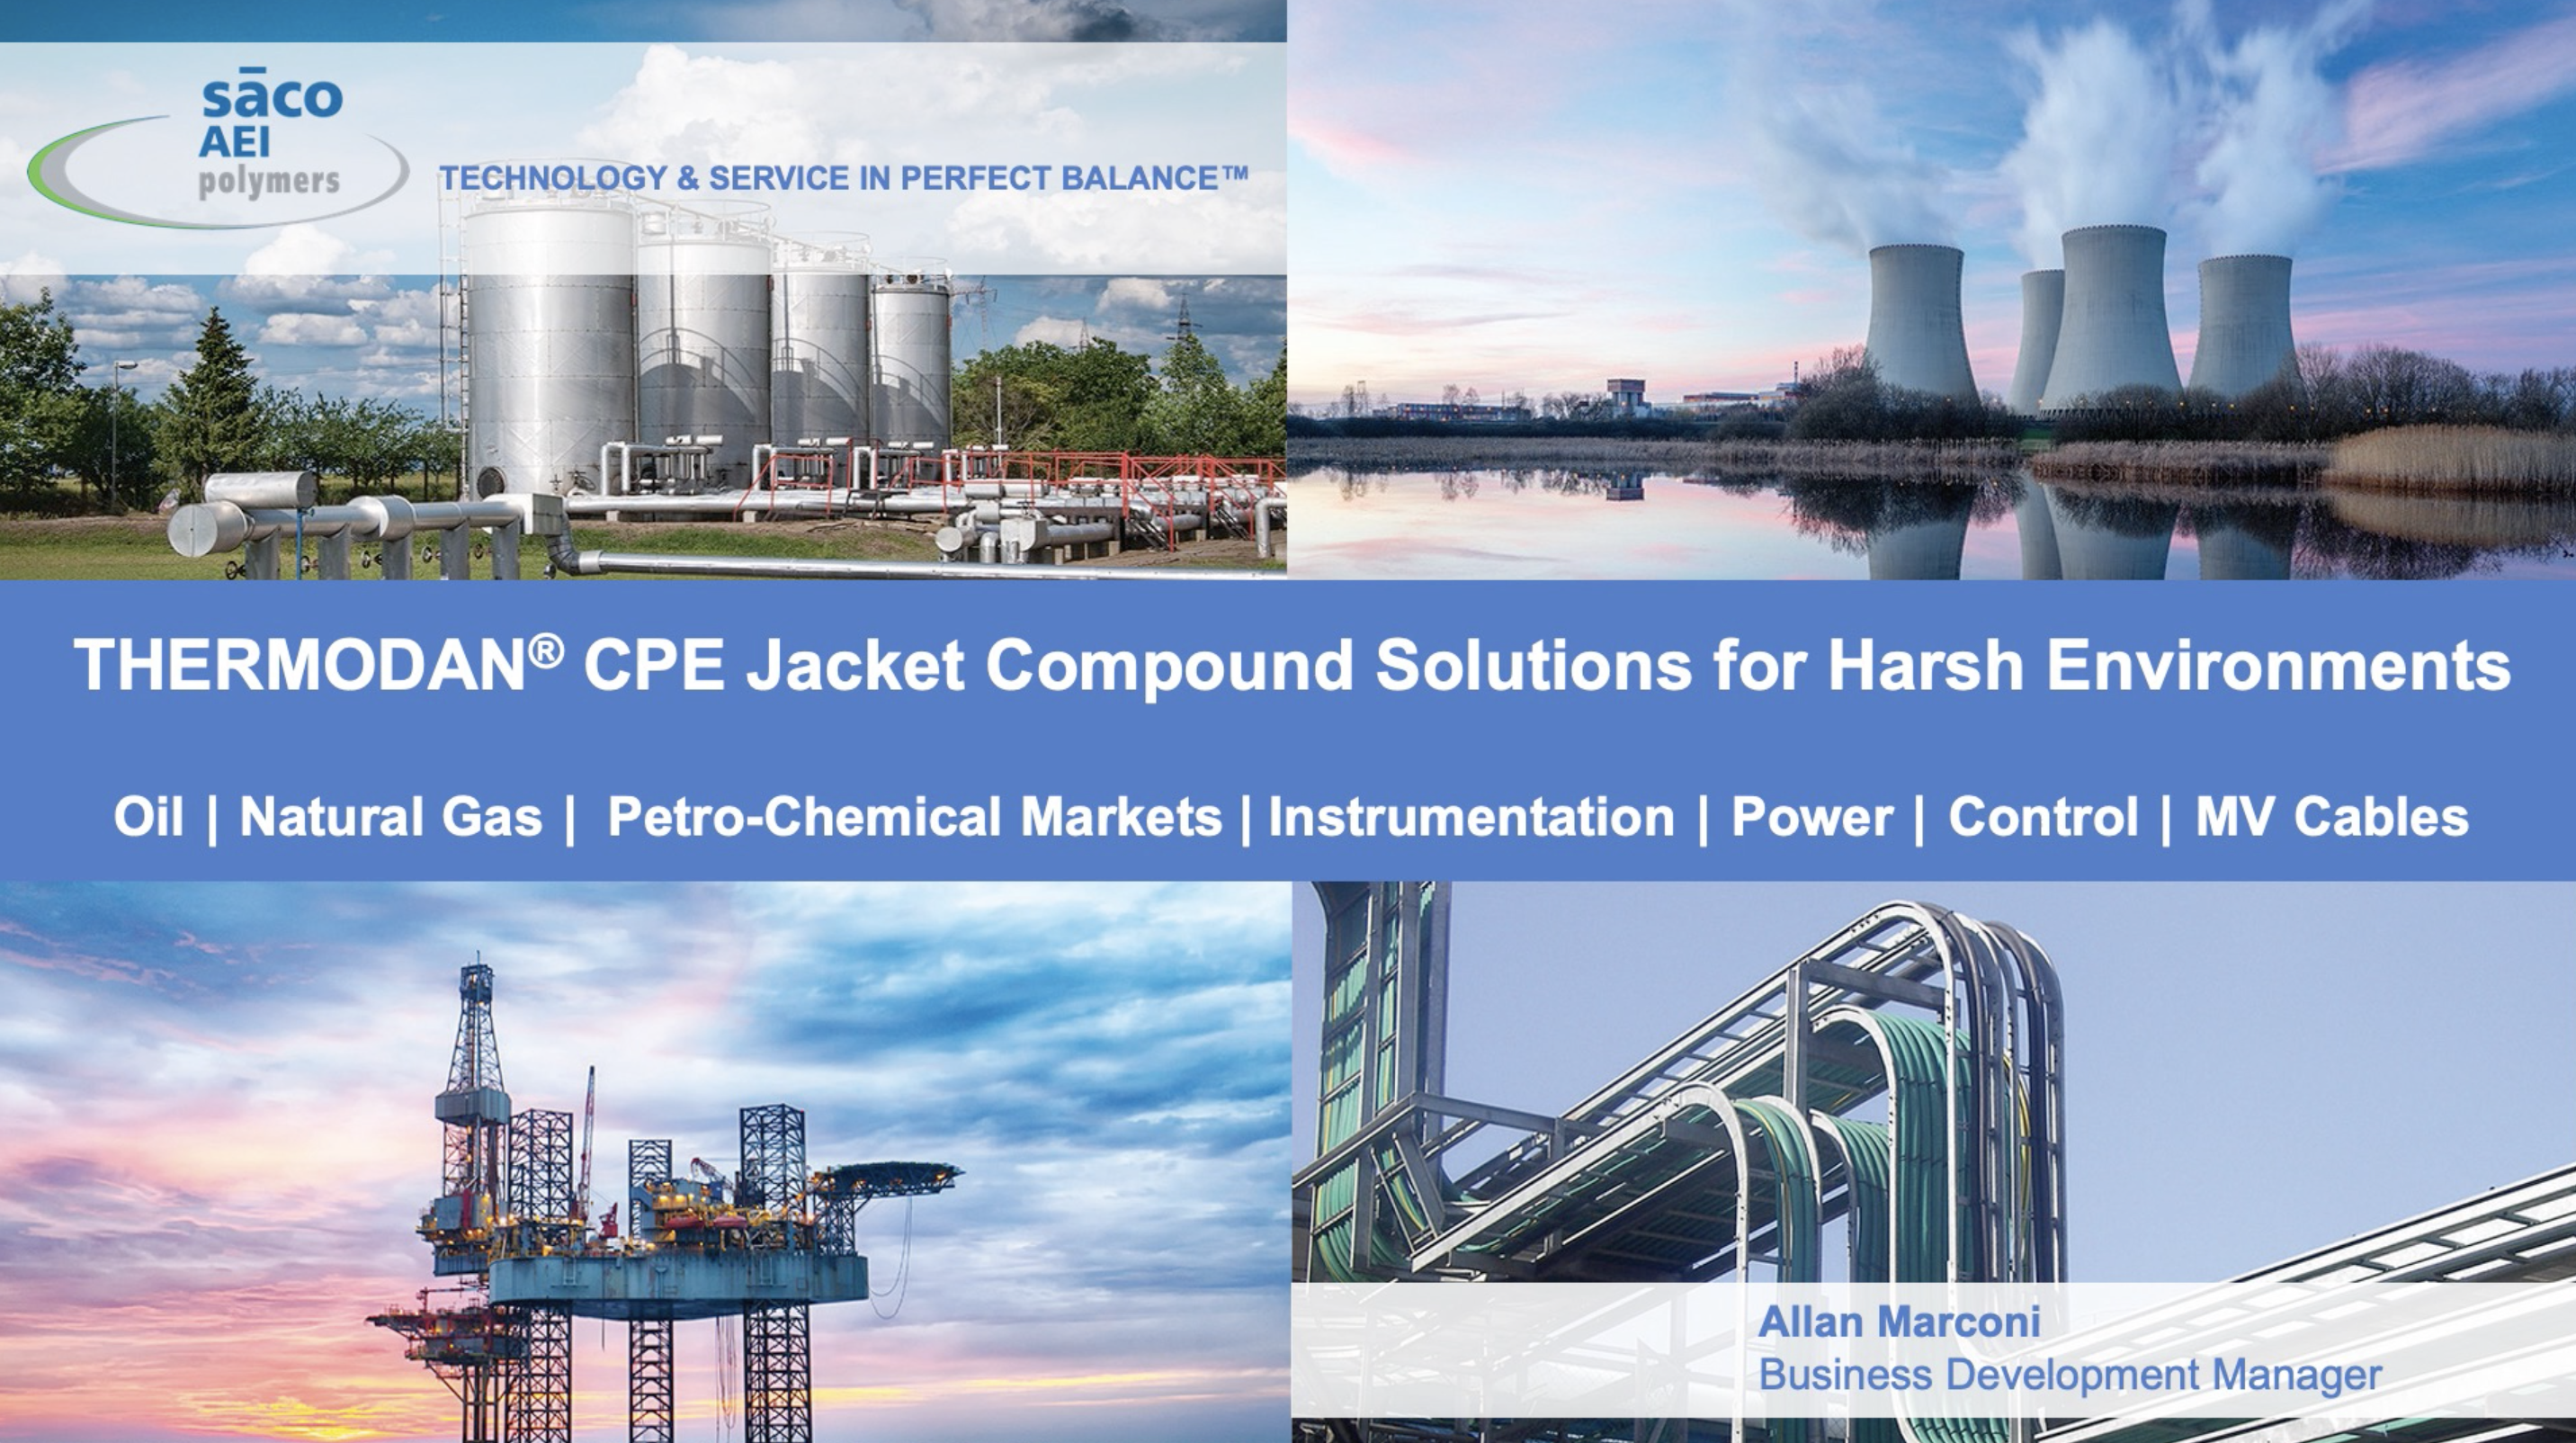 Thermodan CPE Jacket Compound Solutions for Harsh Environments